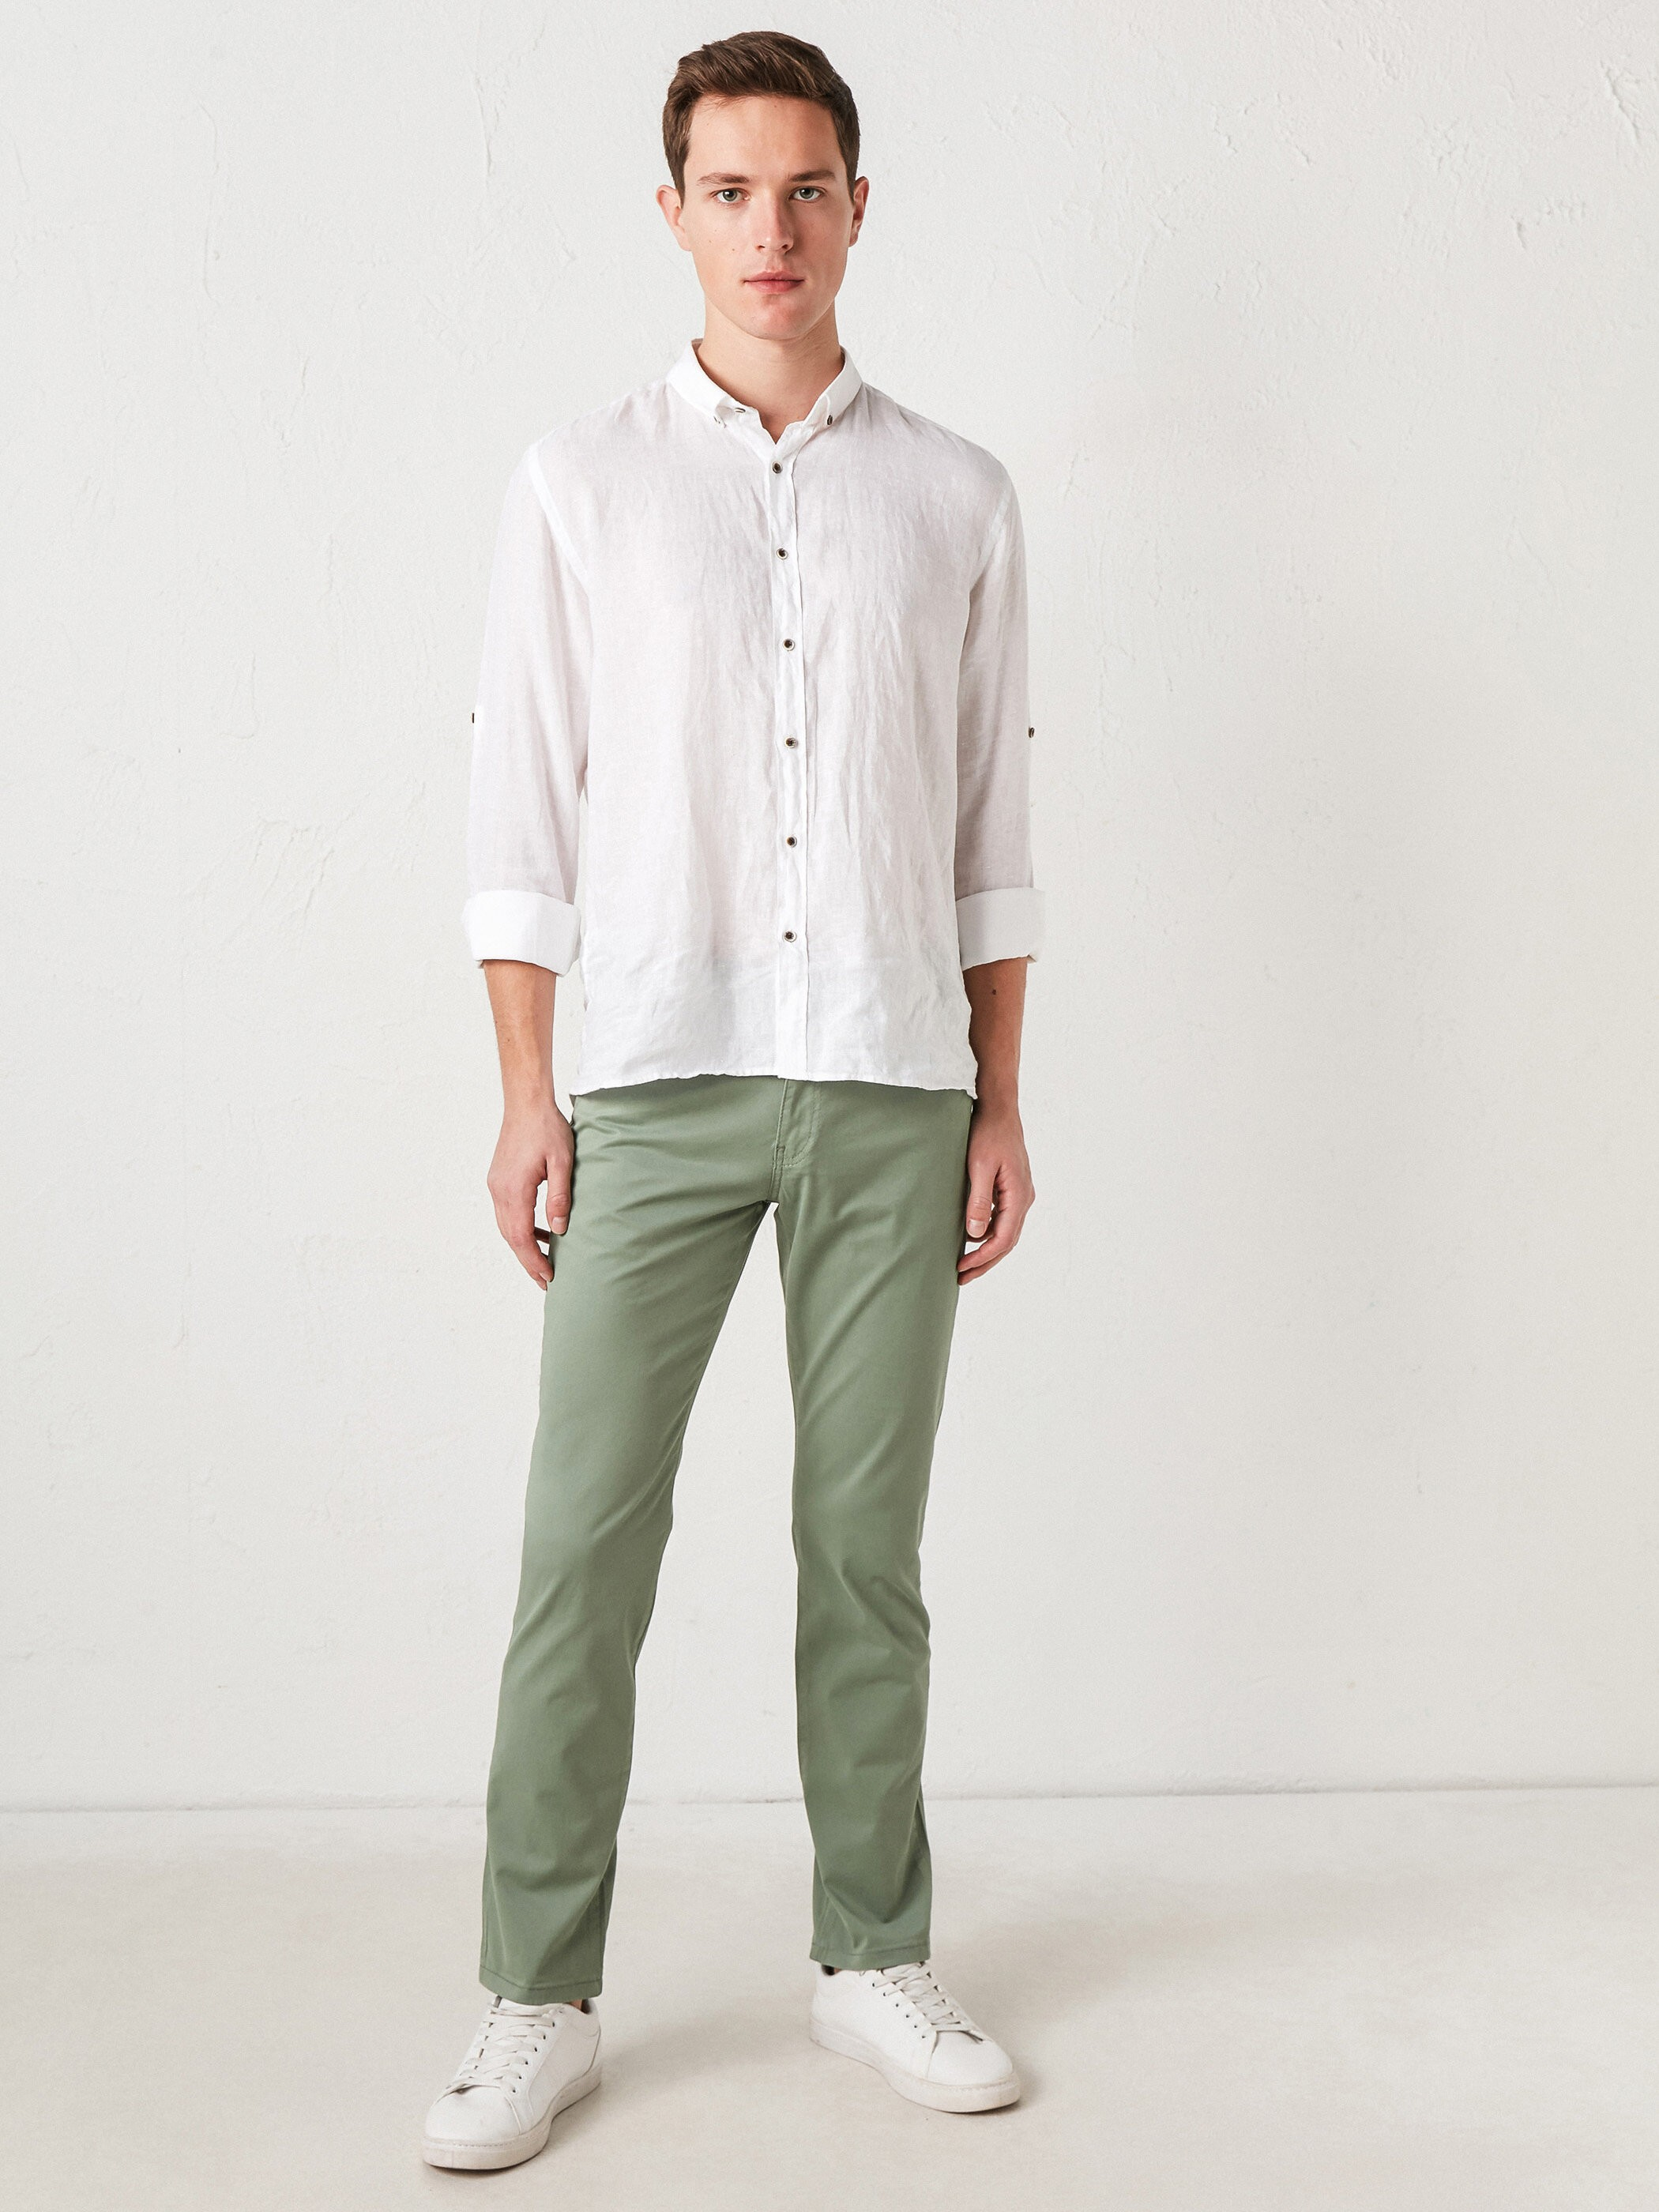 GREEN - Slim Fit Men's Chino Trousers - S11247Z8